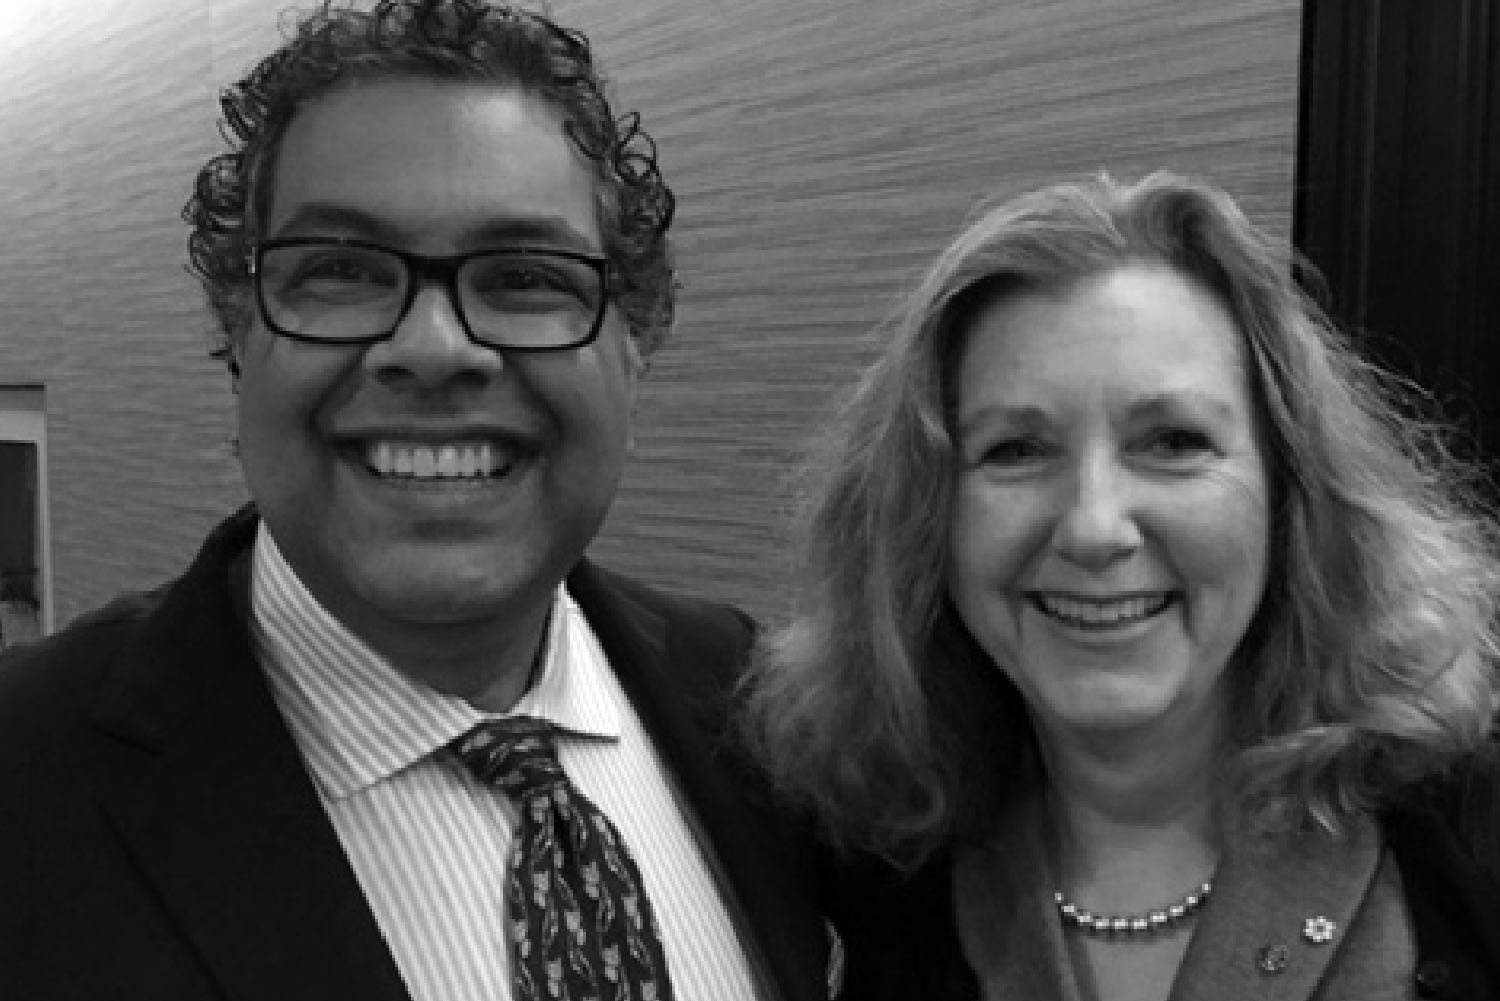 Mary Gordon and Naheed Nenshi